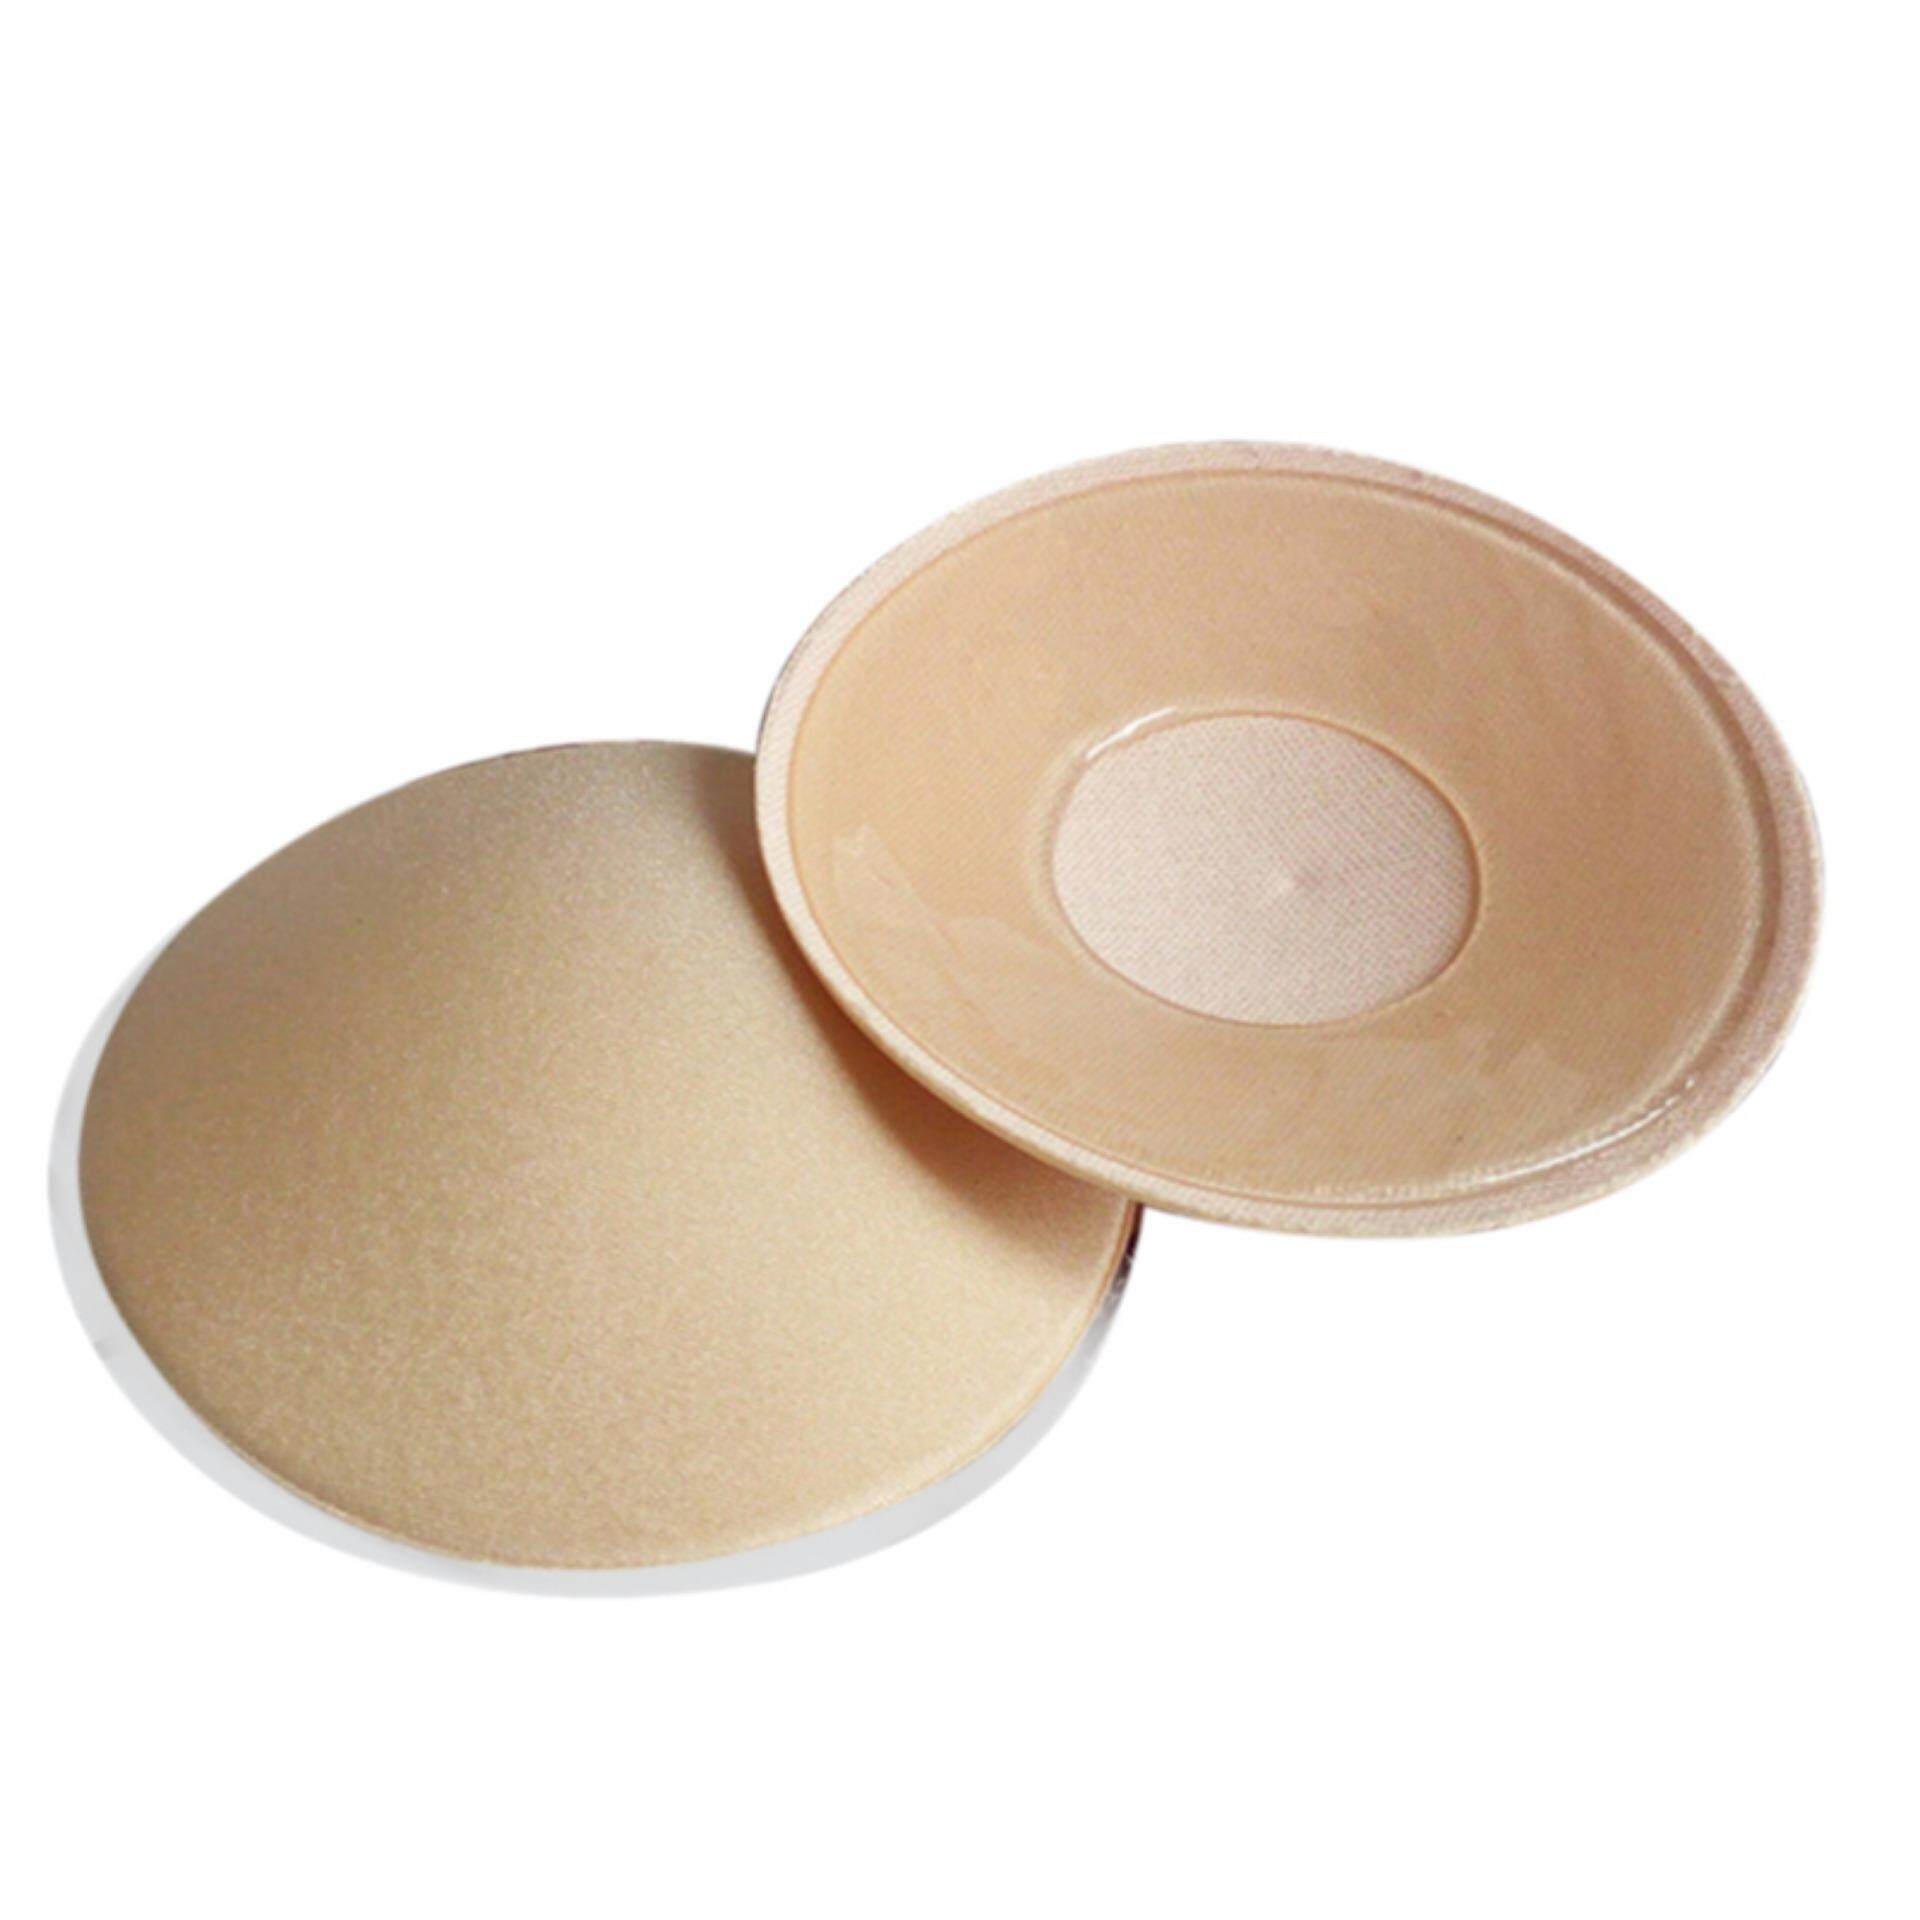 37c6342499 1Pair Bra Pad Reusable Self Adhesive Silicone Breast Pad Chest Stickers  Beige Round